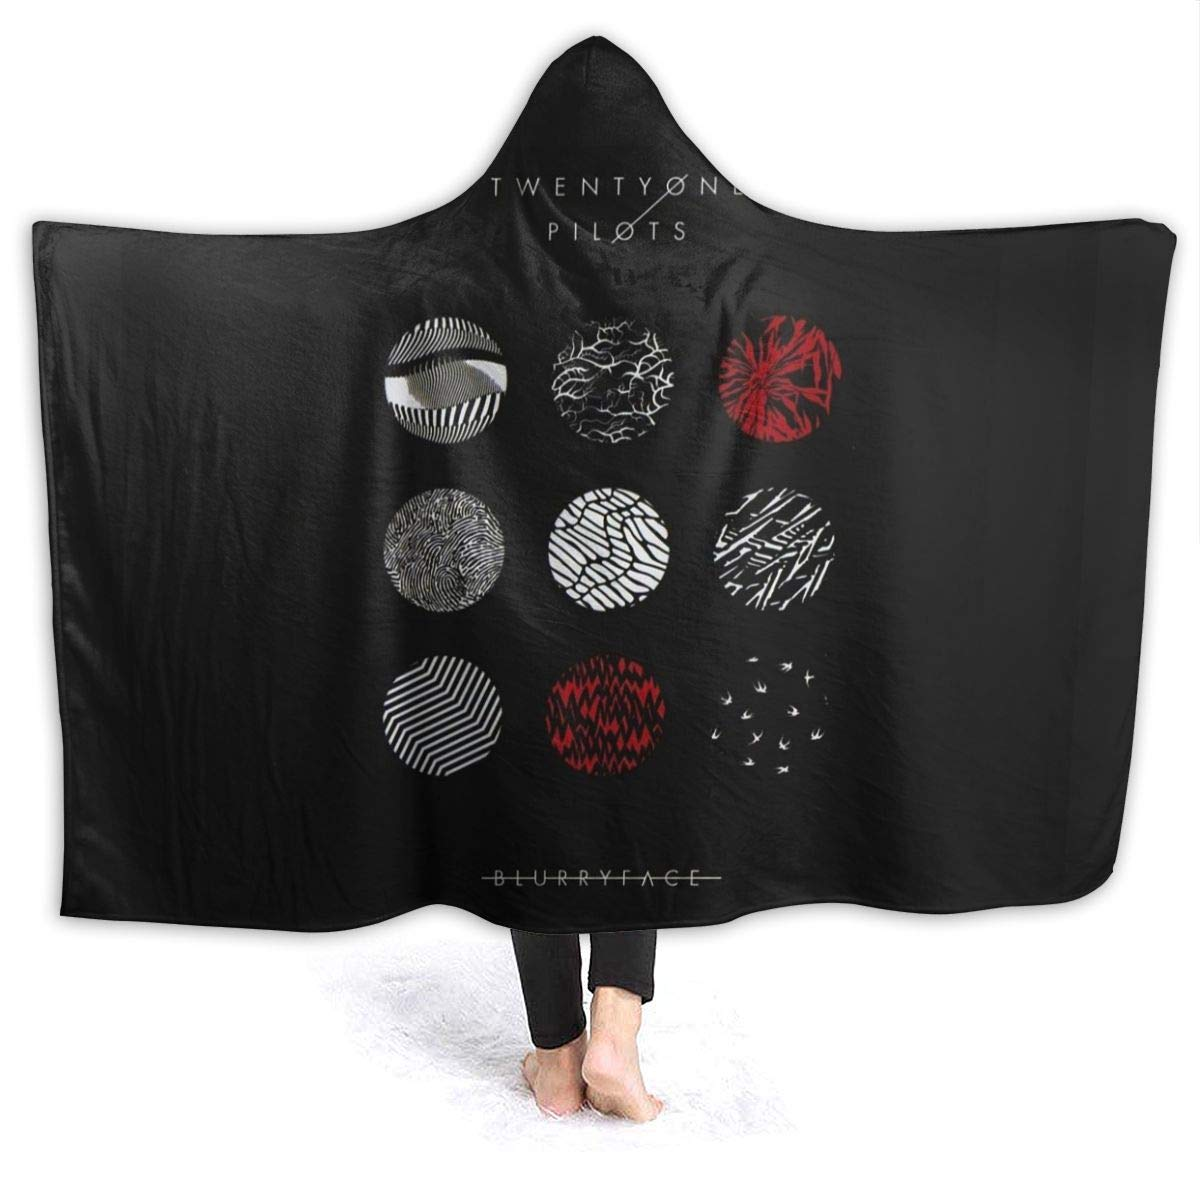 """FriedaJO 21 Blurryface Pilot Hooded Blanket Fleece Warm Hooded Throw Wrap Ultra Soft Blanket for Adults and Children 80""""x60"""""""